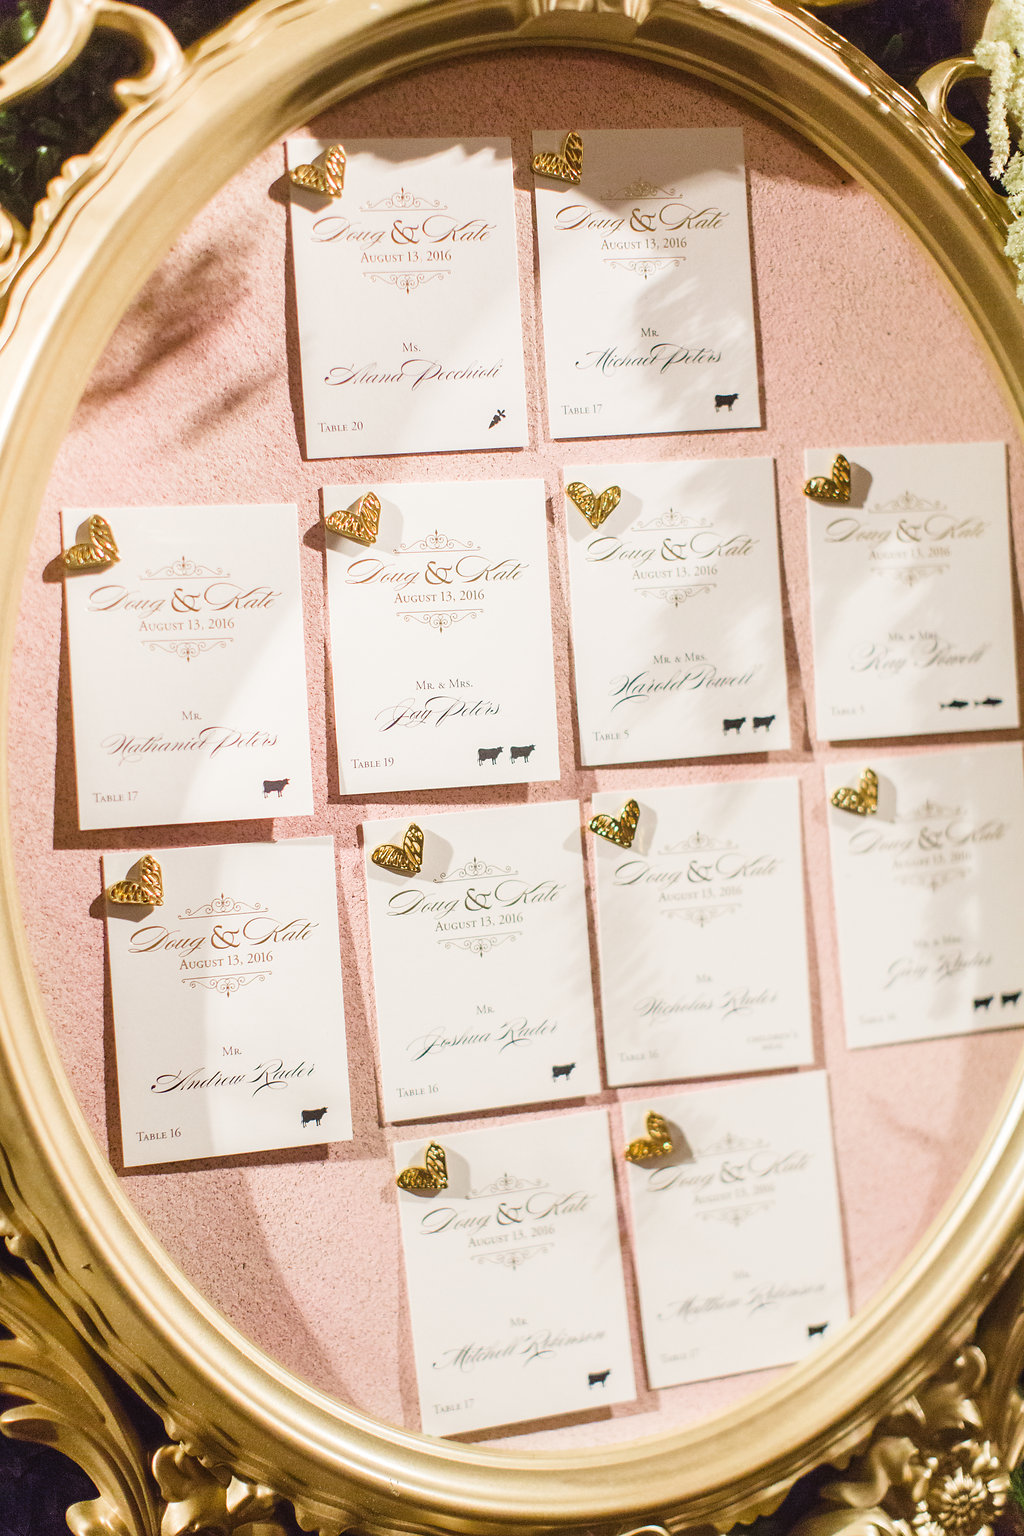 Pink seating chart with heart shape tacks pins wedding ideas